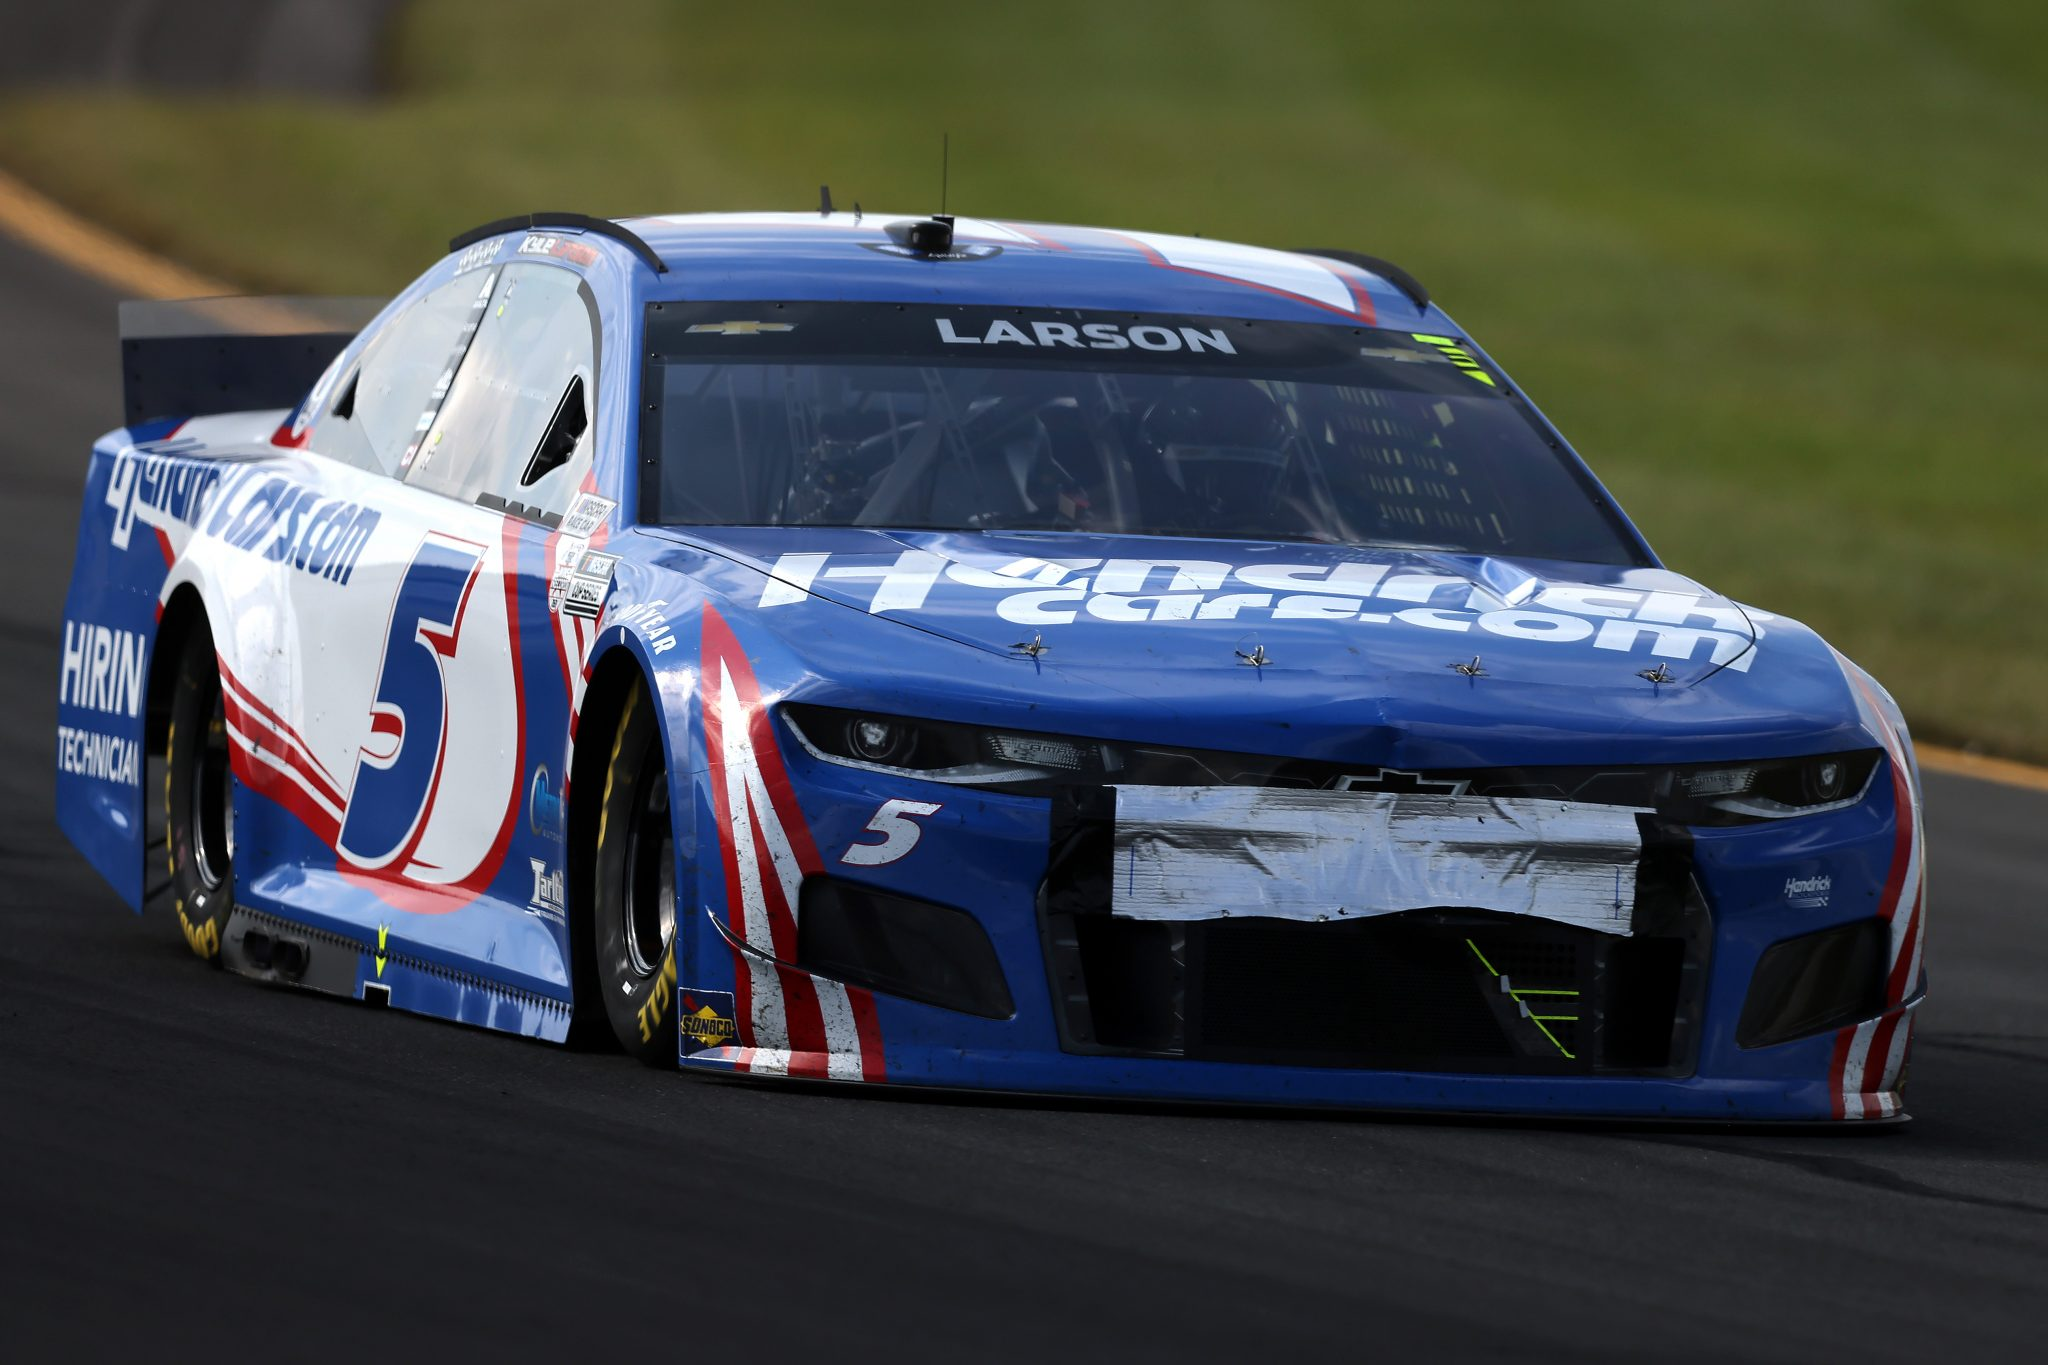 LONG POND, PENNSYLVANIA - JUNE 27: Kyle Larson, driver of the #5 HendrickCars.com Chevrolet, drives during the NASCAR Cup Series Explore the Pocono Mountains 350 at Pocono Raceway on June 27, 2021 in Long Pond, Pennsylvania. (Photo by James Gilbert/Getty Images) | Getty Images